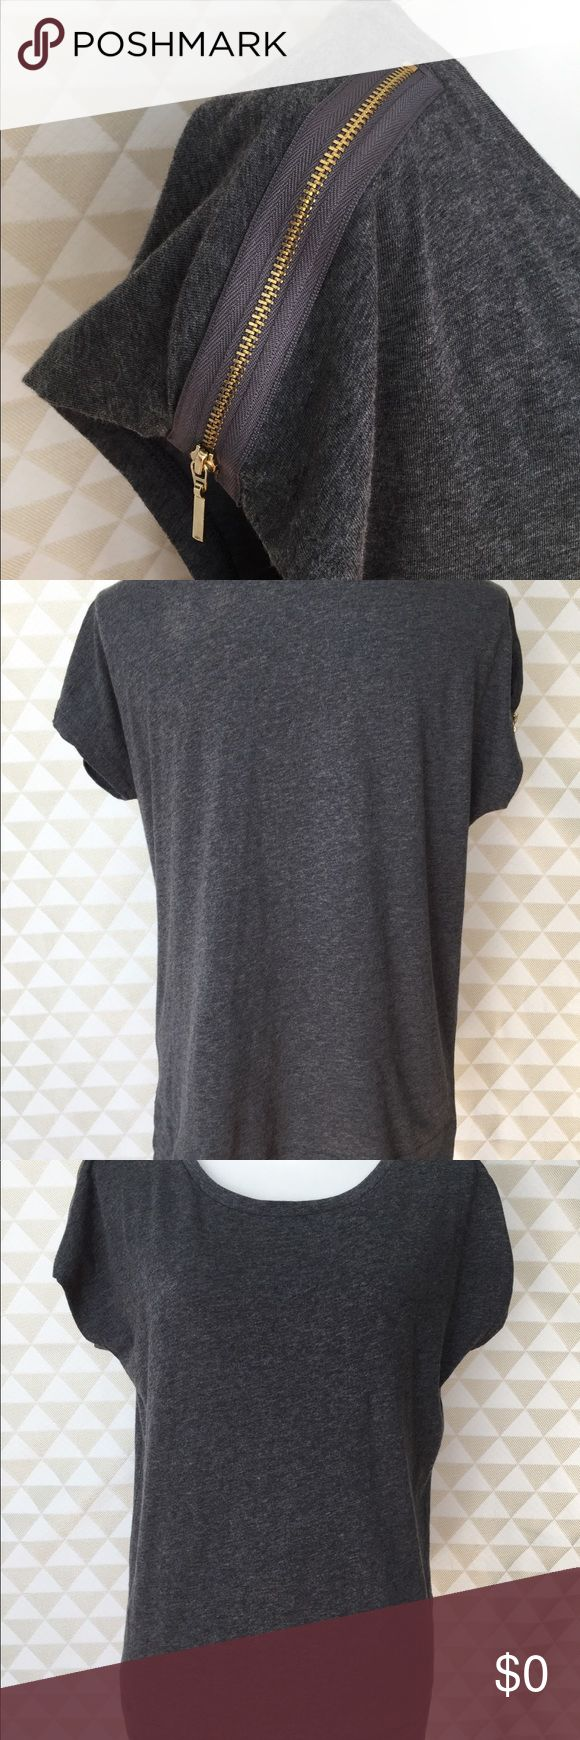 Gray Cotton Top w/Exposed Zipper Shoulder, S-XL Gray/charcoal short sleeve cotton top with gold colored exposed zipper detail on shoulder.   100% Cotton  This New Without Tags (NWOT) garment is directly from the manufacturer and has never been washed, worn, displayed in a store, or sold in any other retail venue. It is being sold for the first time but does not have tags. Tops Tees - Short Sleeve